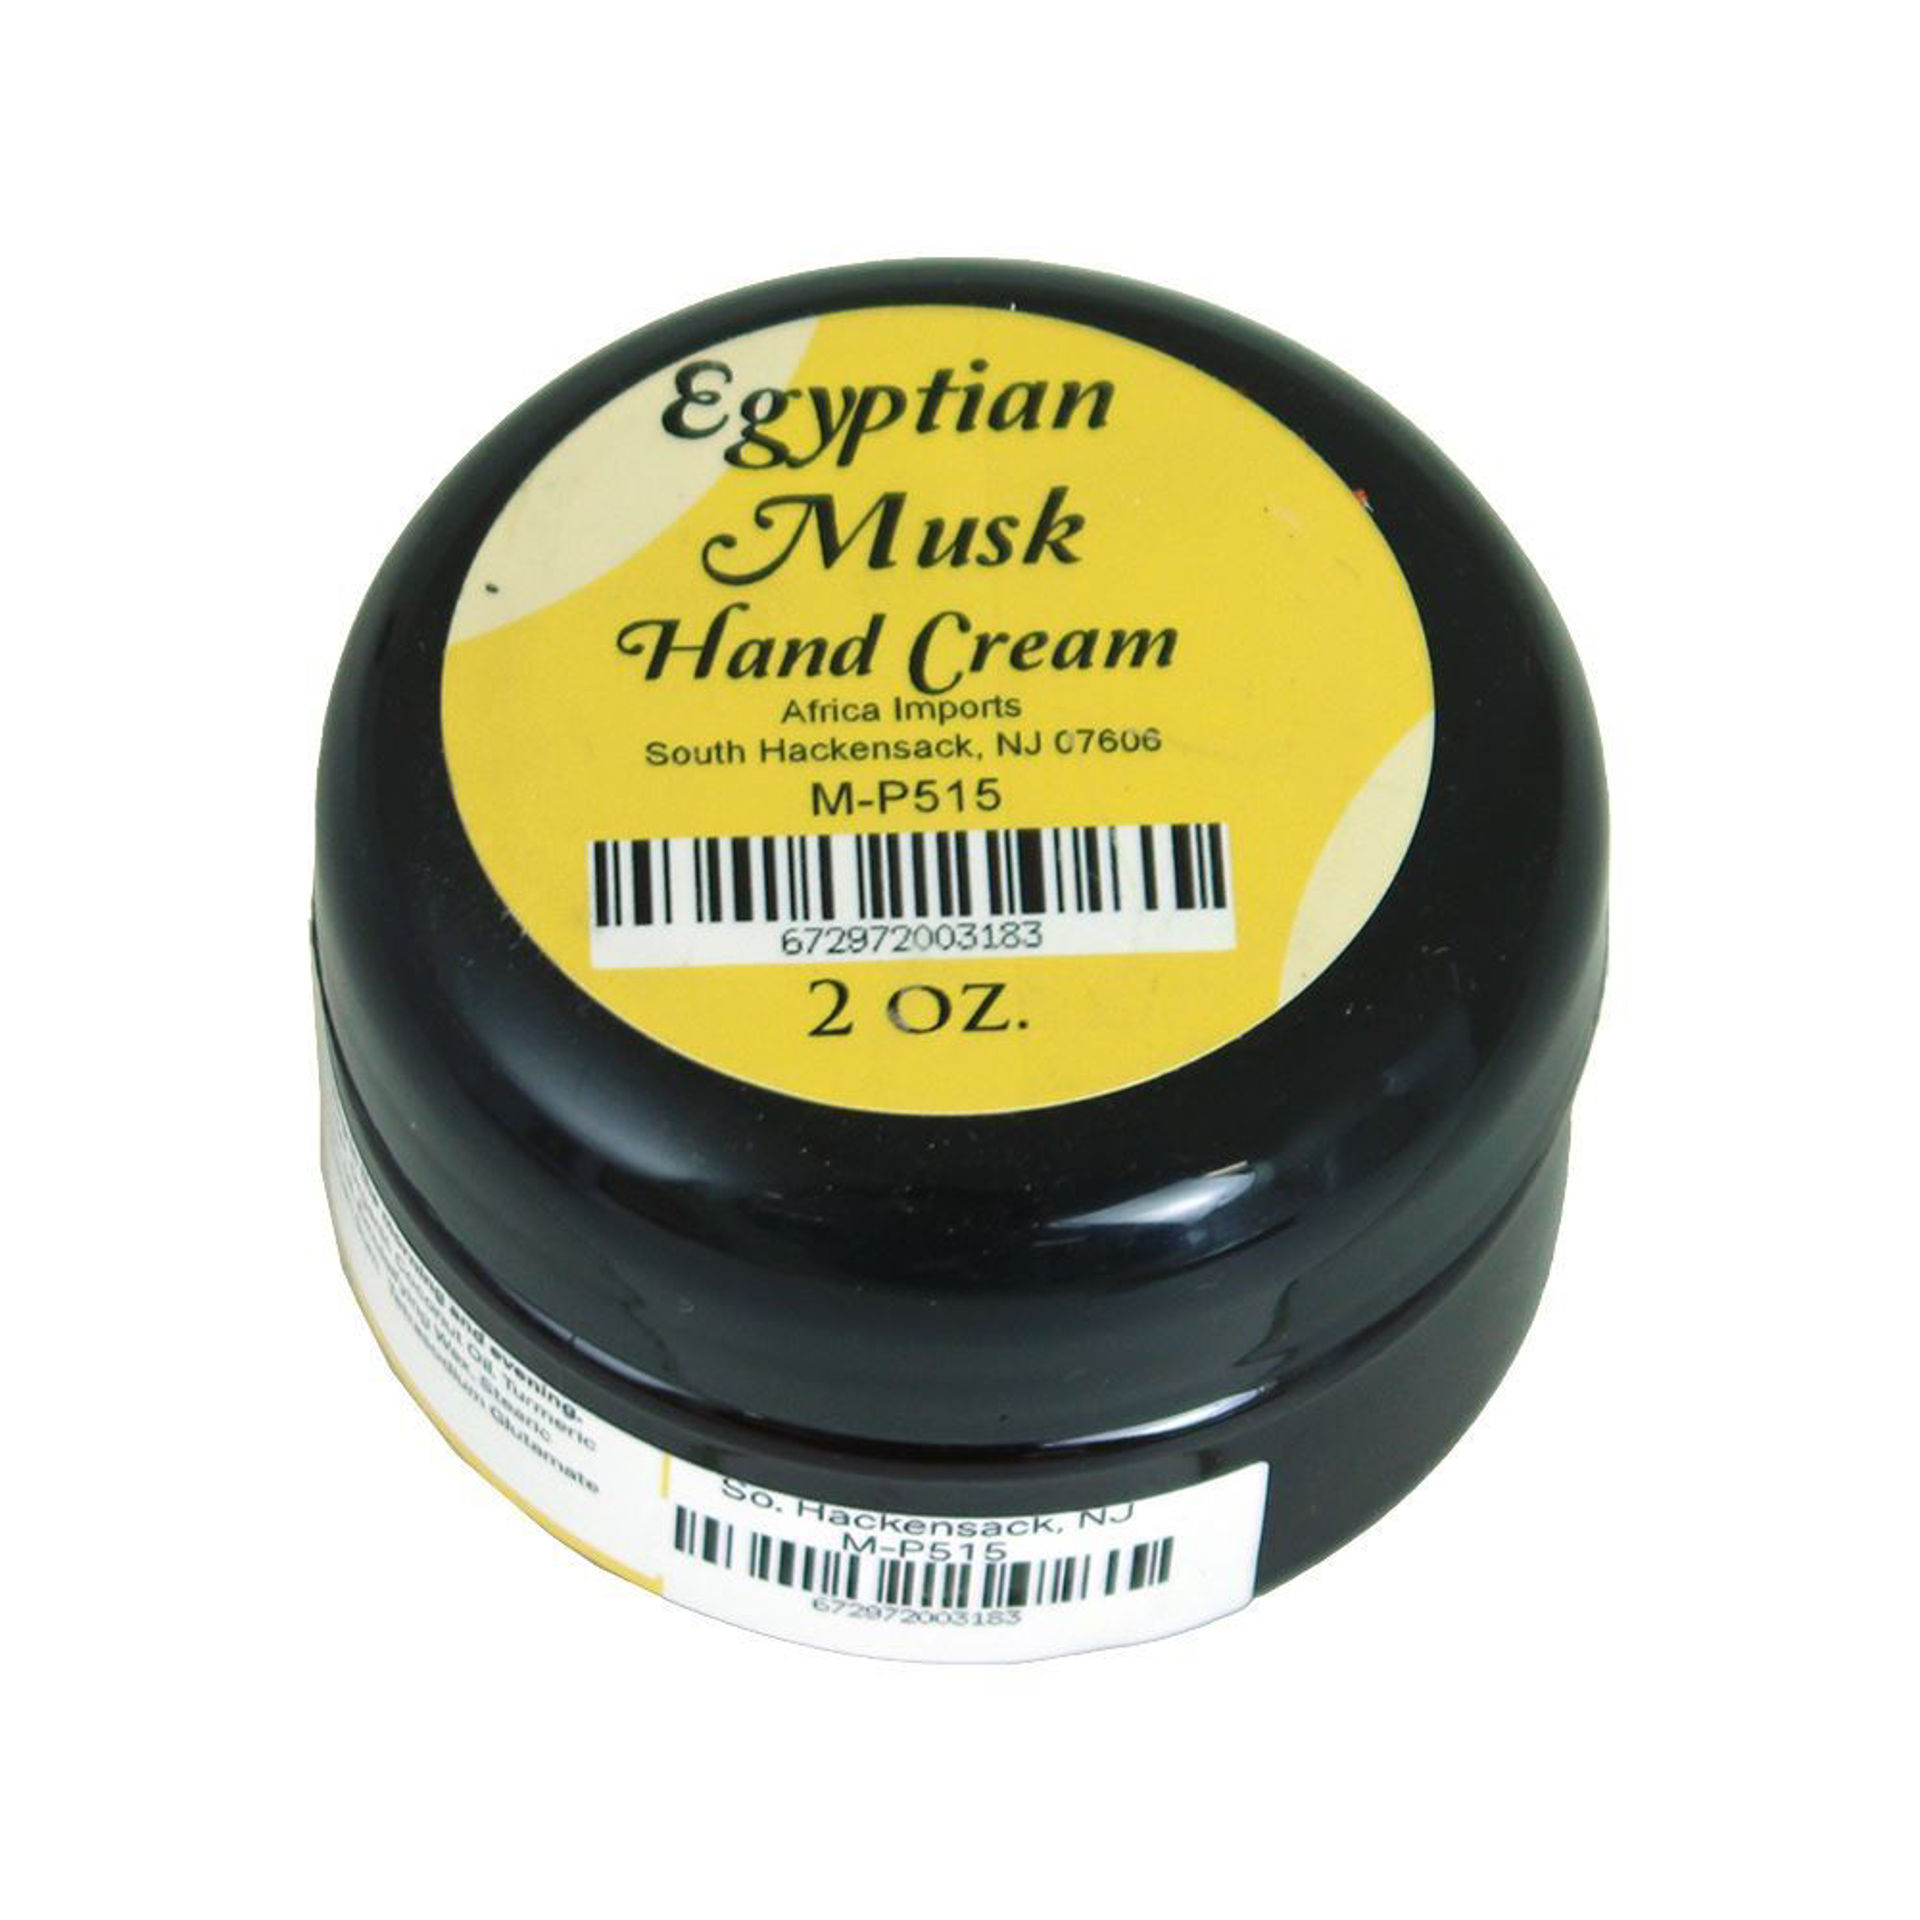 Picture of Egyptian Musk Hand Cream - 2 oz.